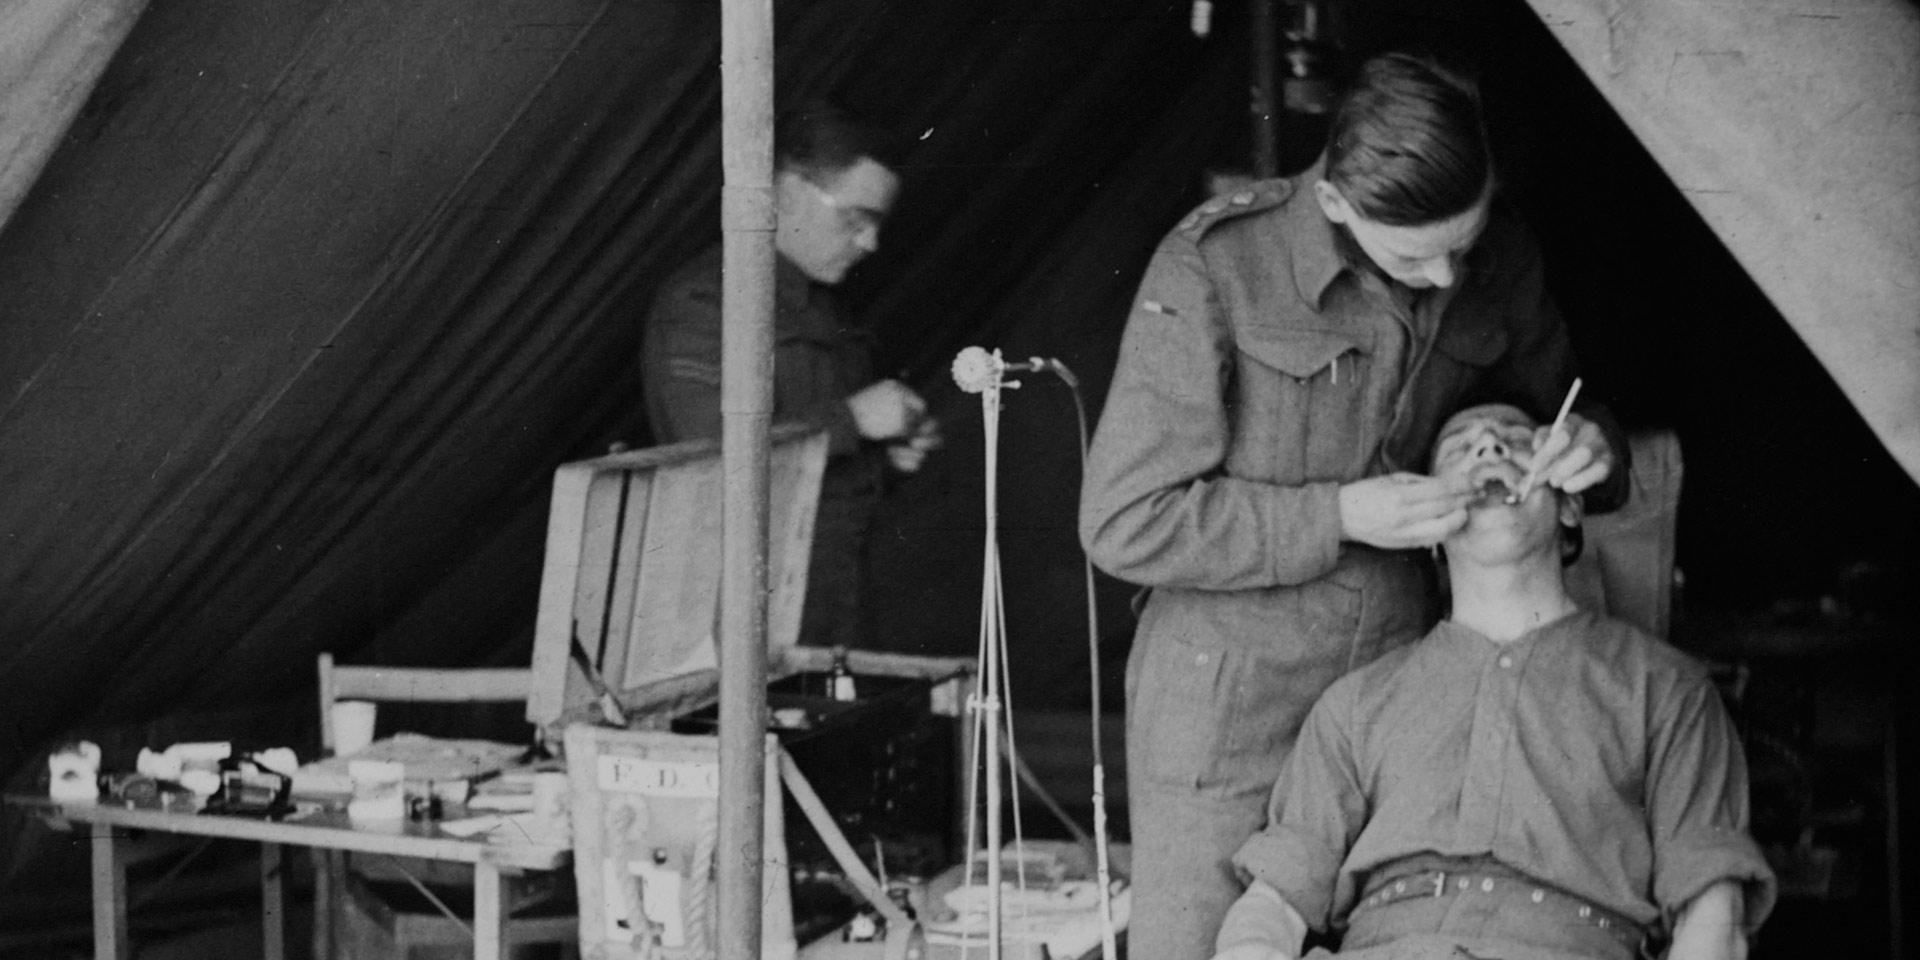 Captain Rushby practising dentistry on a patient in the front line, February 1943